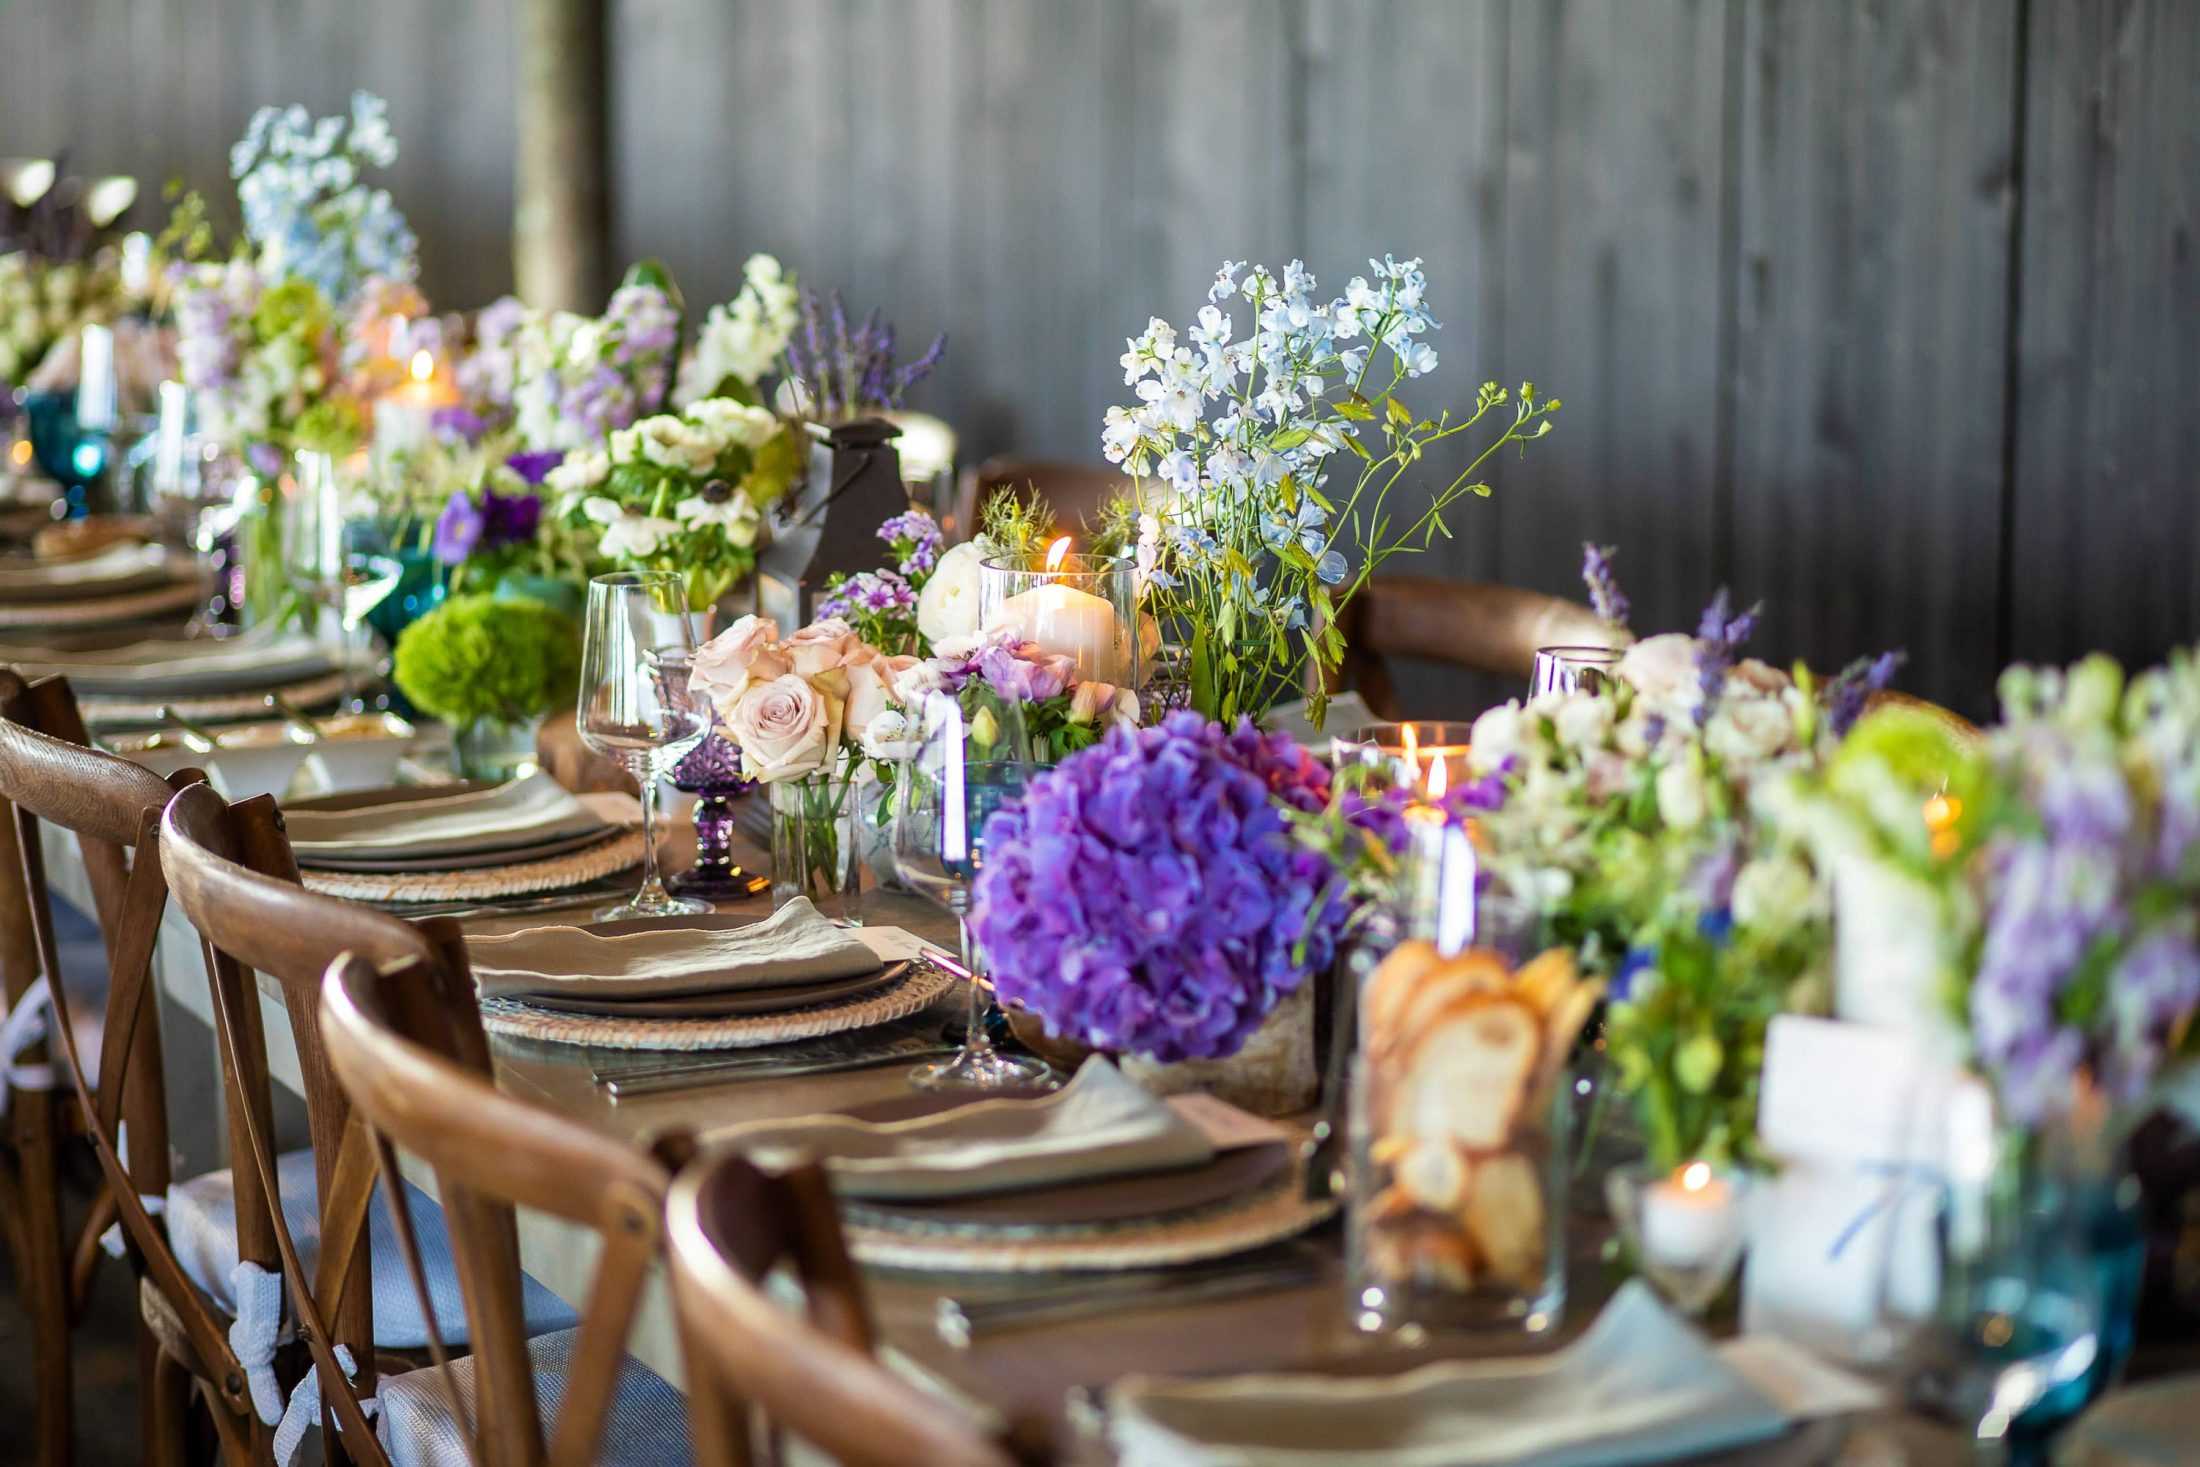 Table decor at this Hamptons wedding weekend held at The Parrish Museum | Photo by Roey Yohai Studio